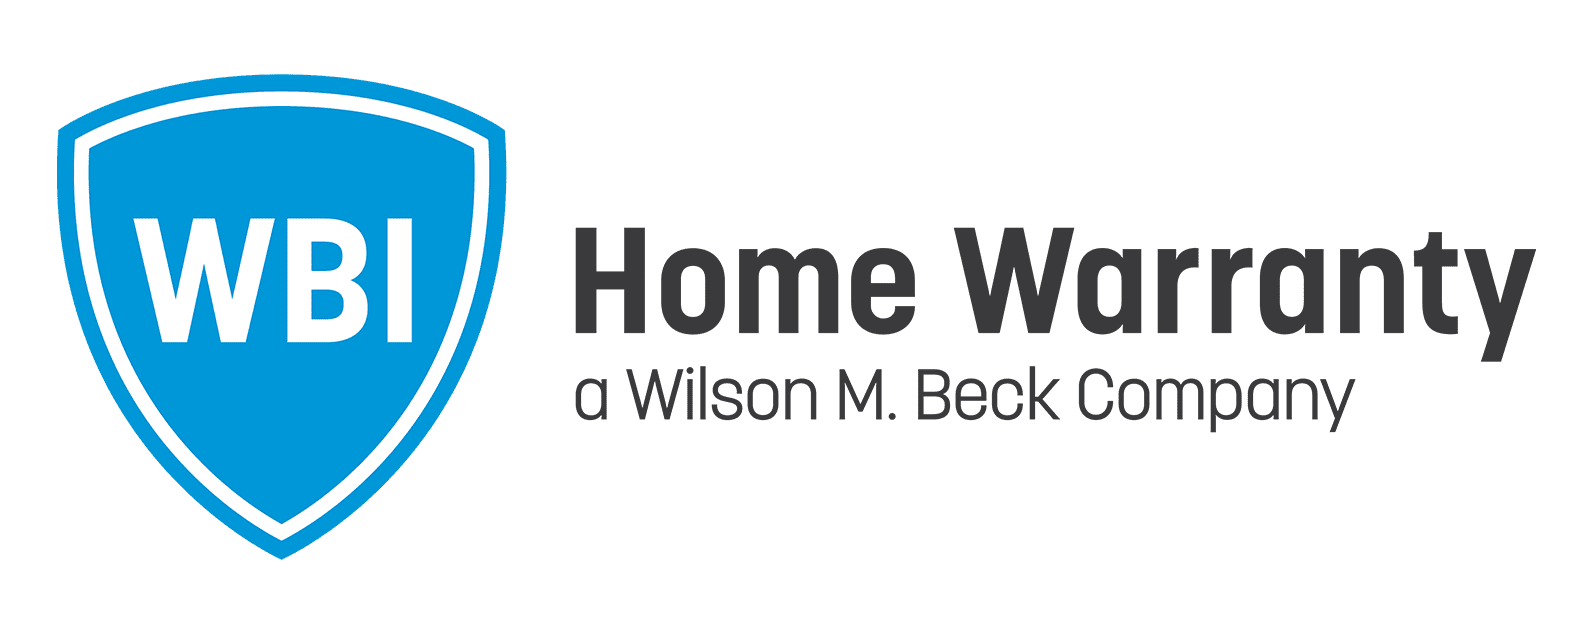 Y5 Creative Case Studies Logo WBI Home Warranty